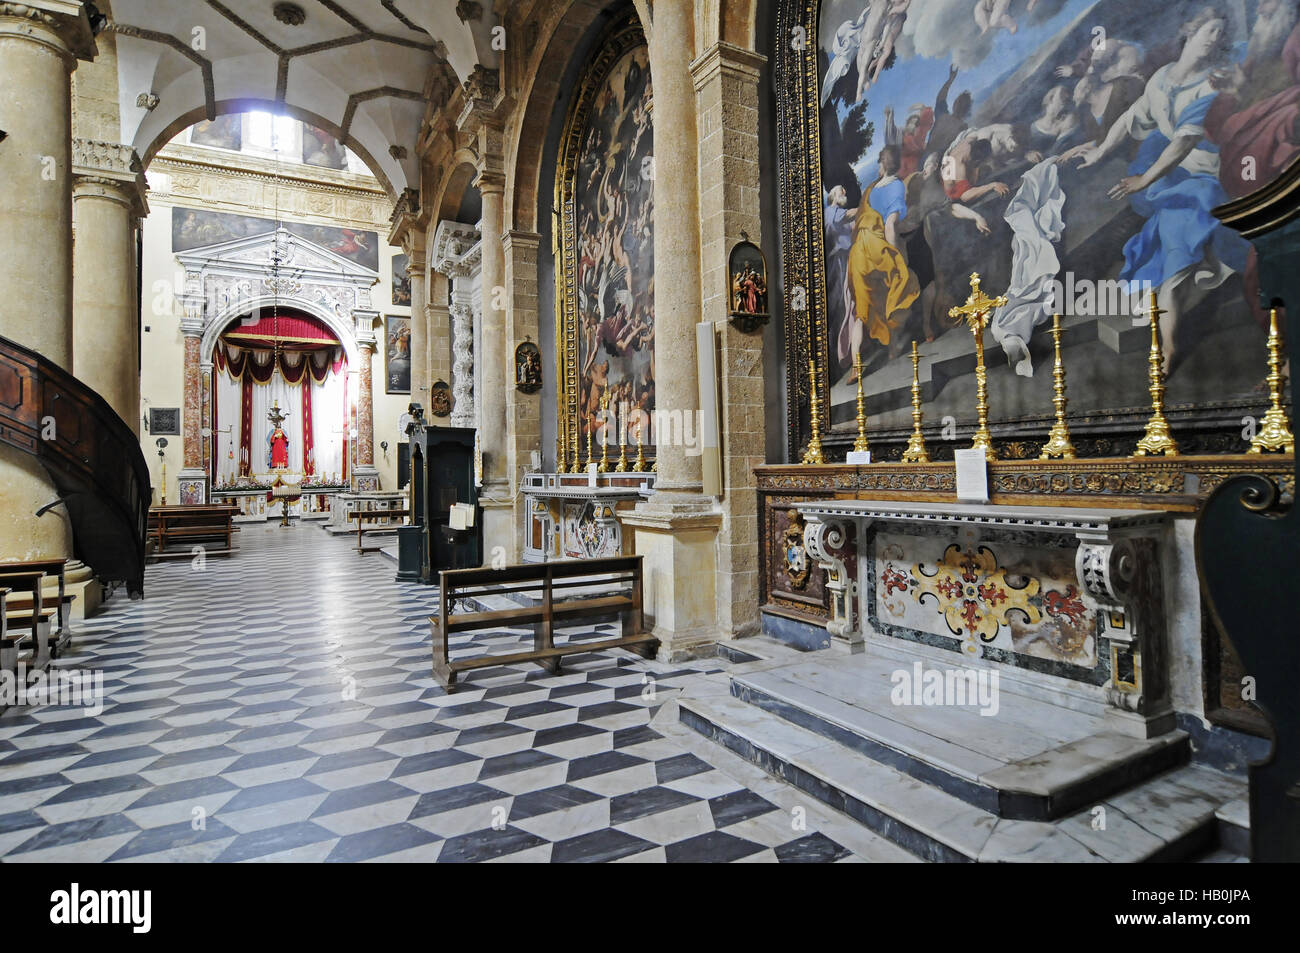 Sant Agata, cathedral, Gallipoli, Italy - Stock Image